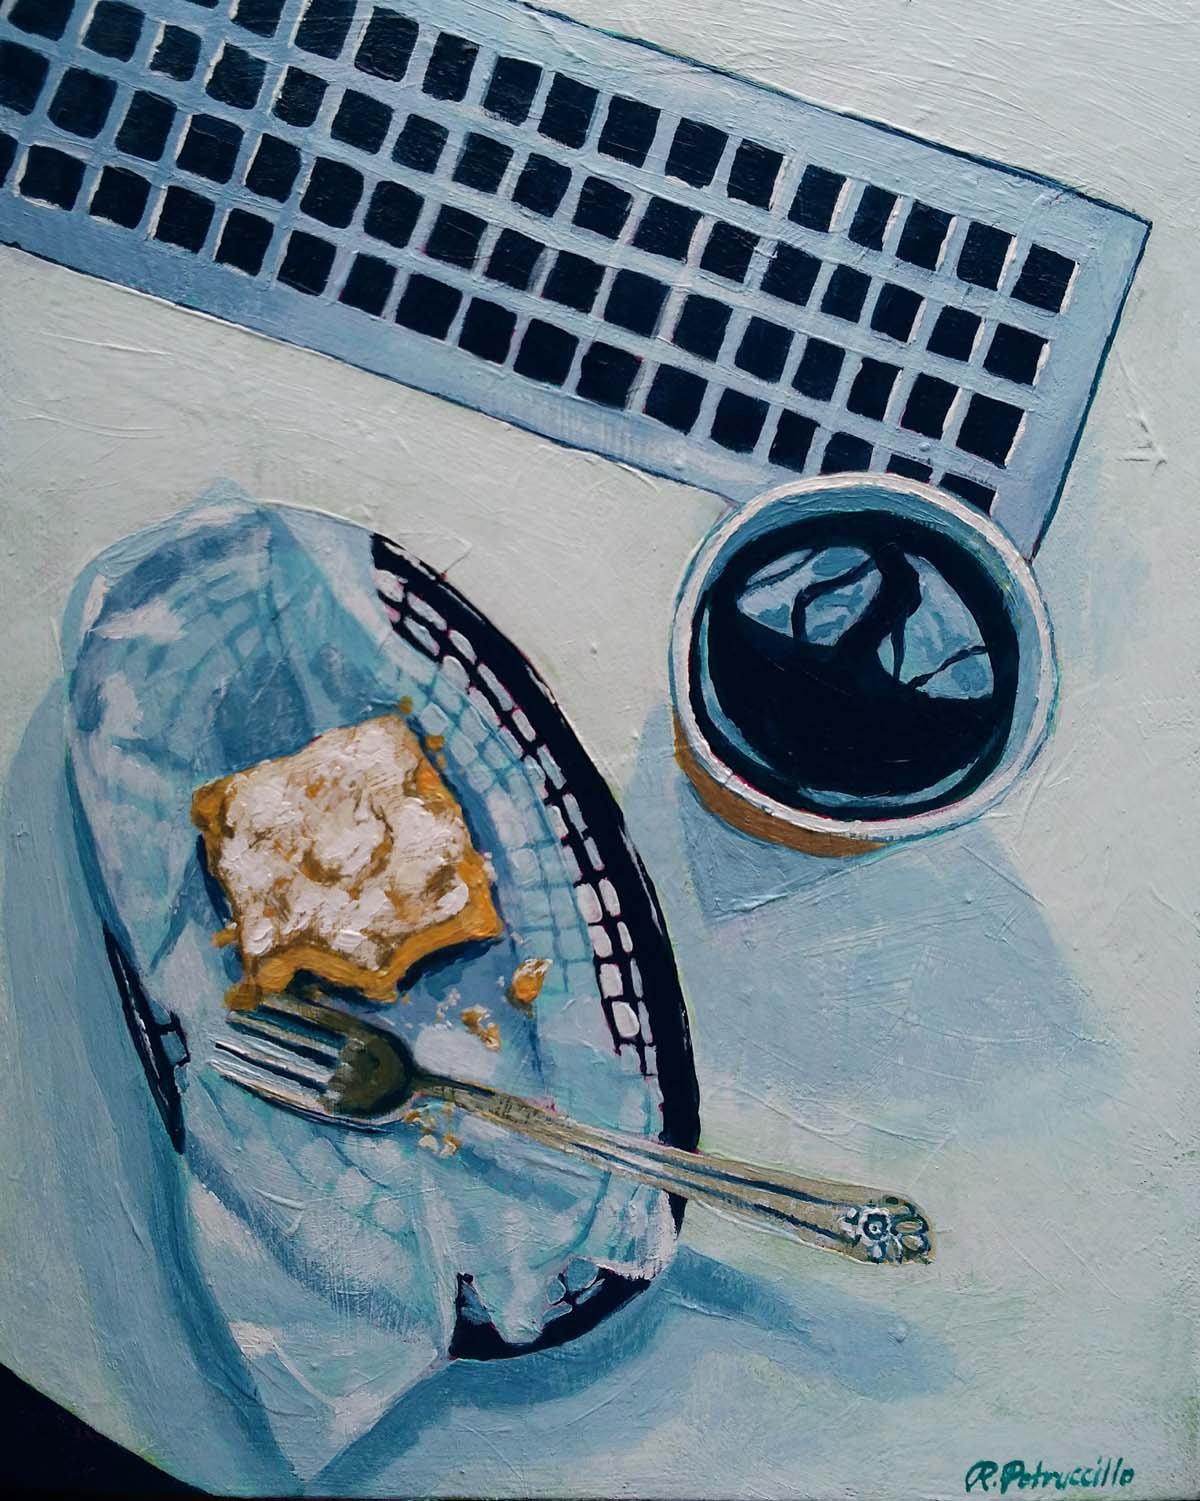 painting of a take out coffee and pastry at a cafe in a coastal New England town - copyright Rachel Petruccillo